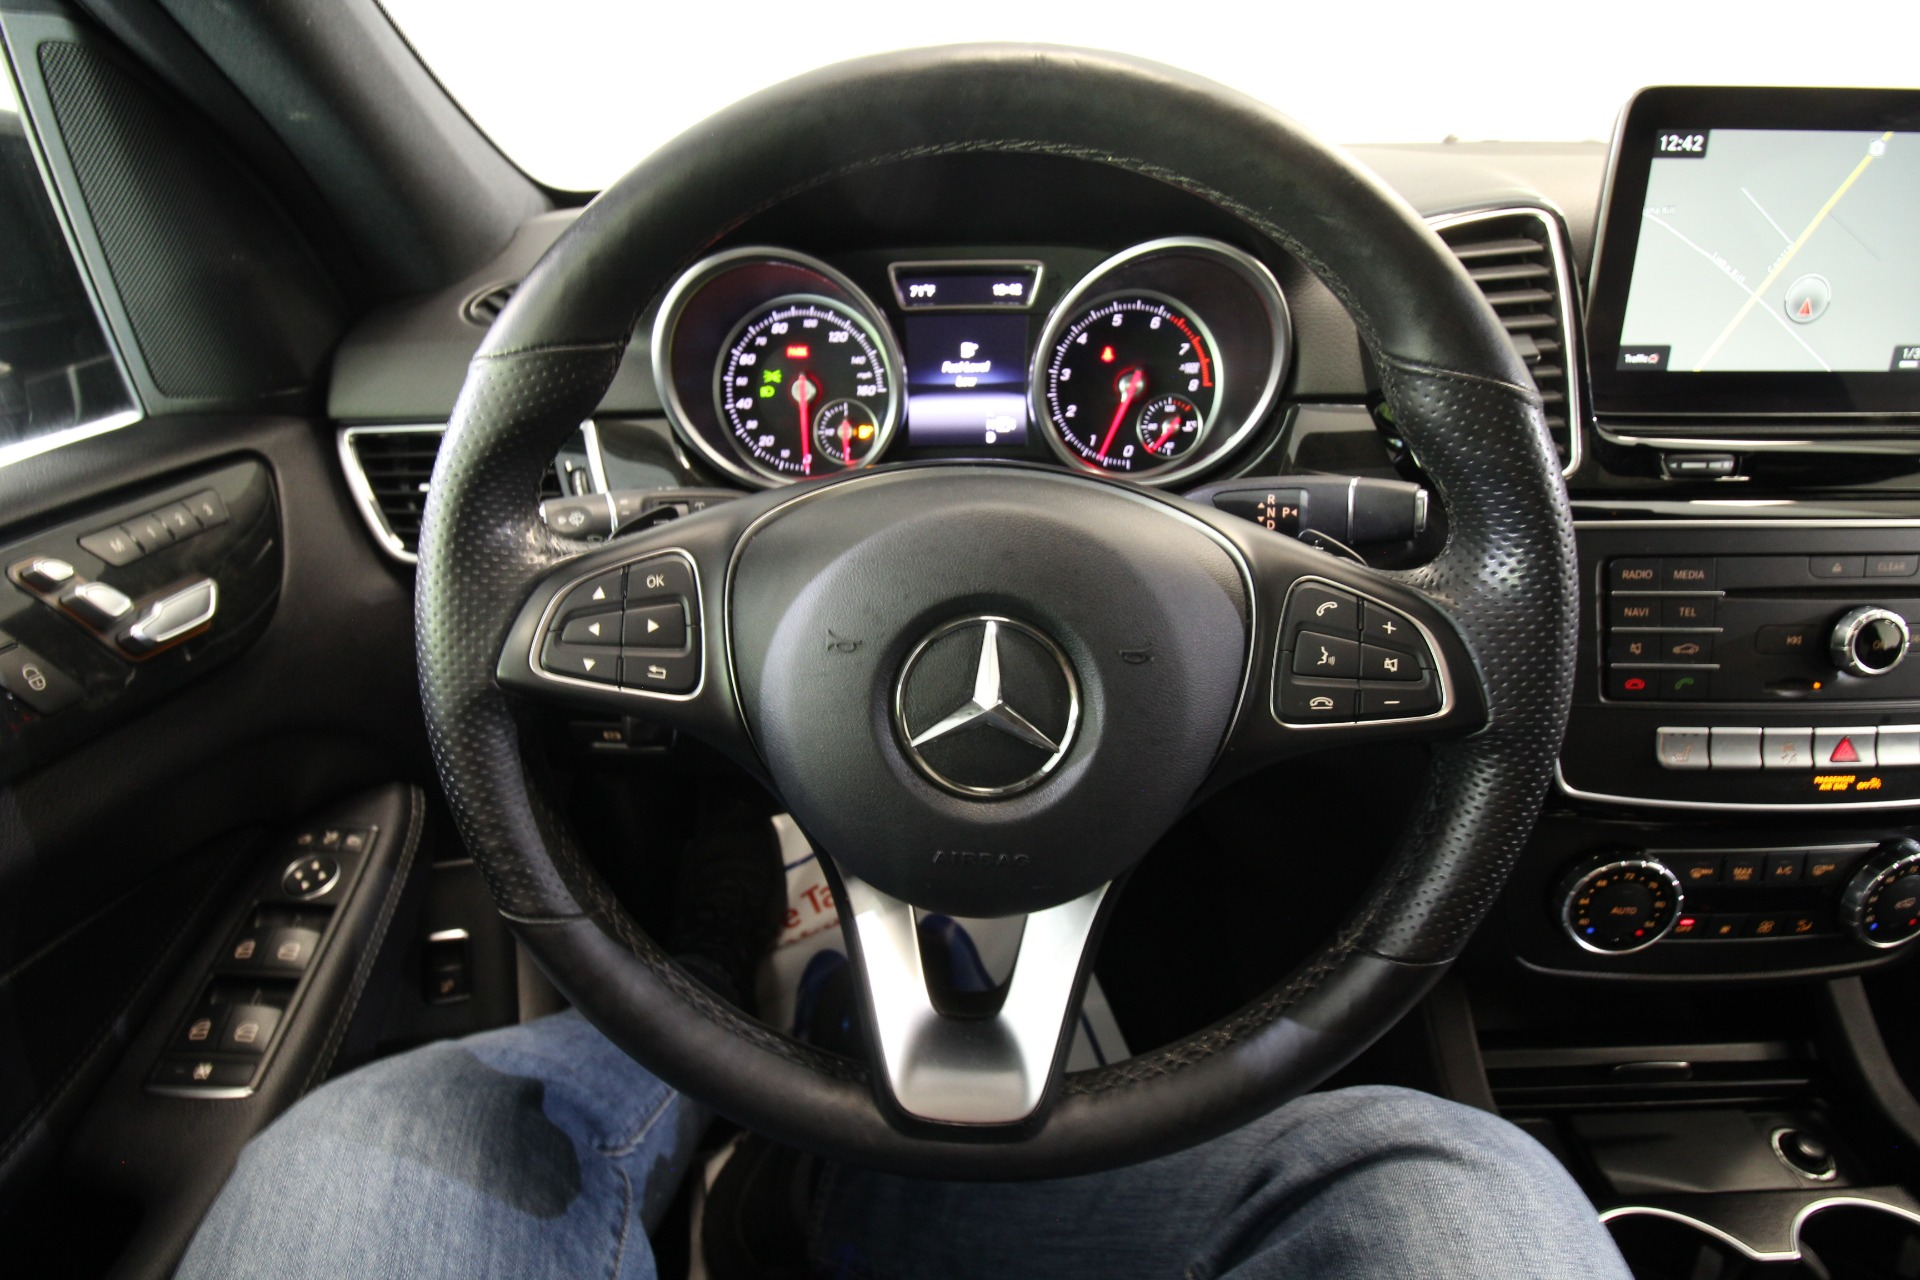 Used 2016 Mercedes-Benz GLE-Class GLE350 4MATIC 1 OWNER SUPERB LOADED WITH OPTIONS   Albany, NY